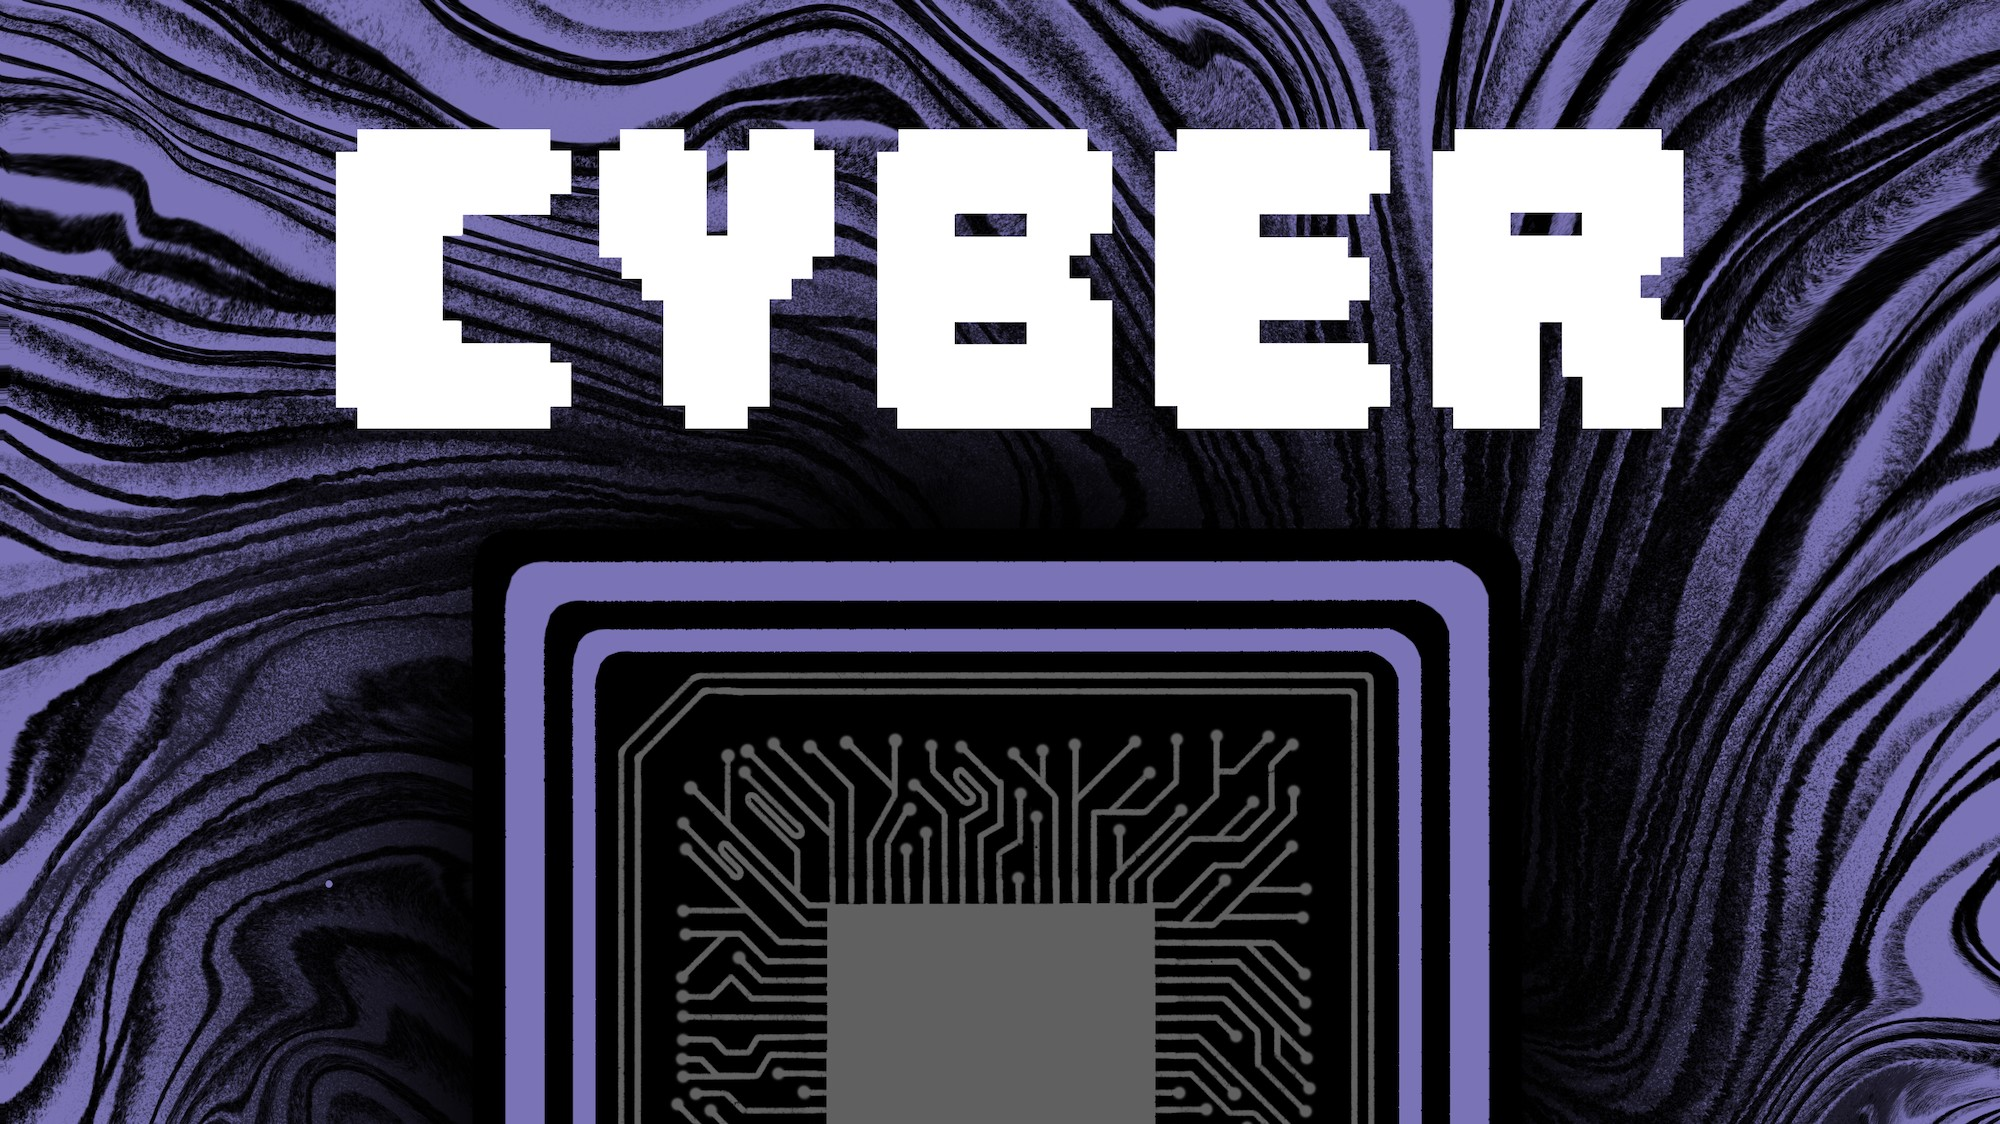 The Cybersecurity Industry Makes Millions, But Is It Keeping Us Safe?